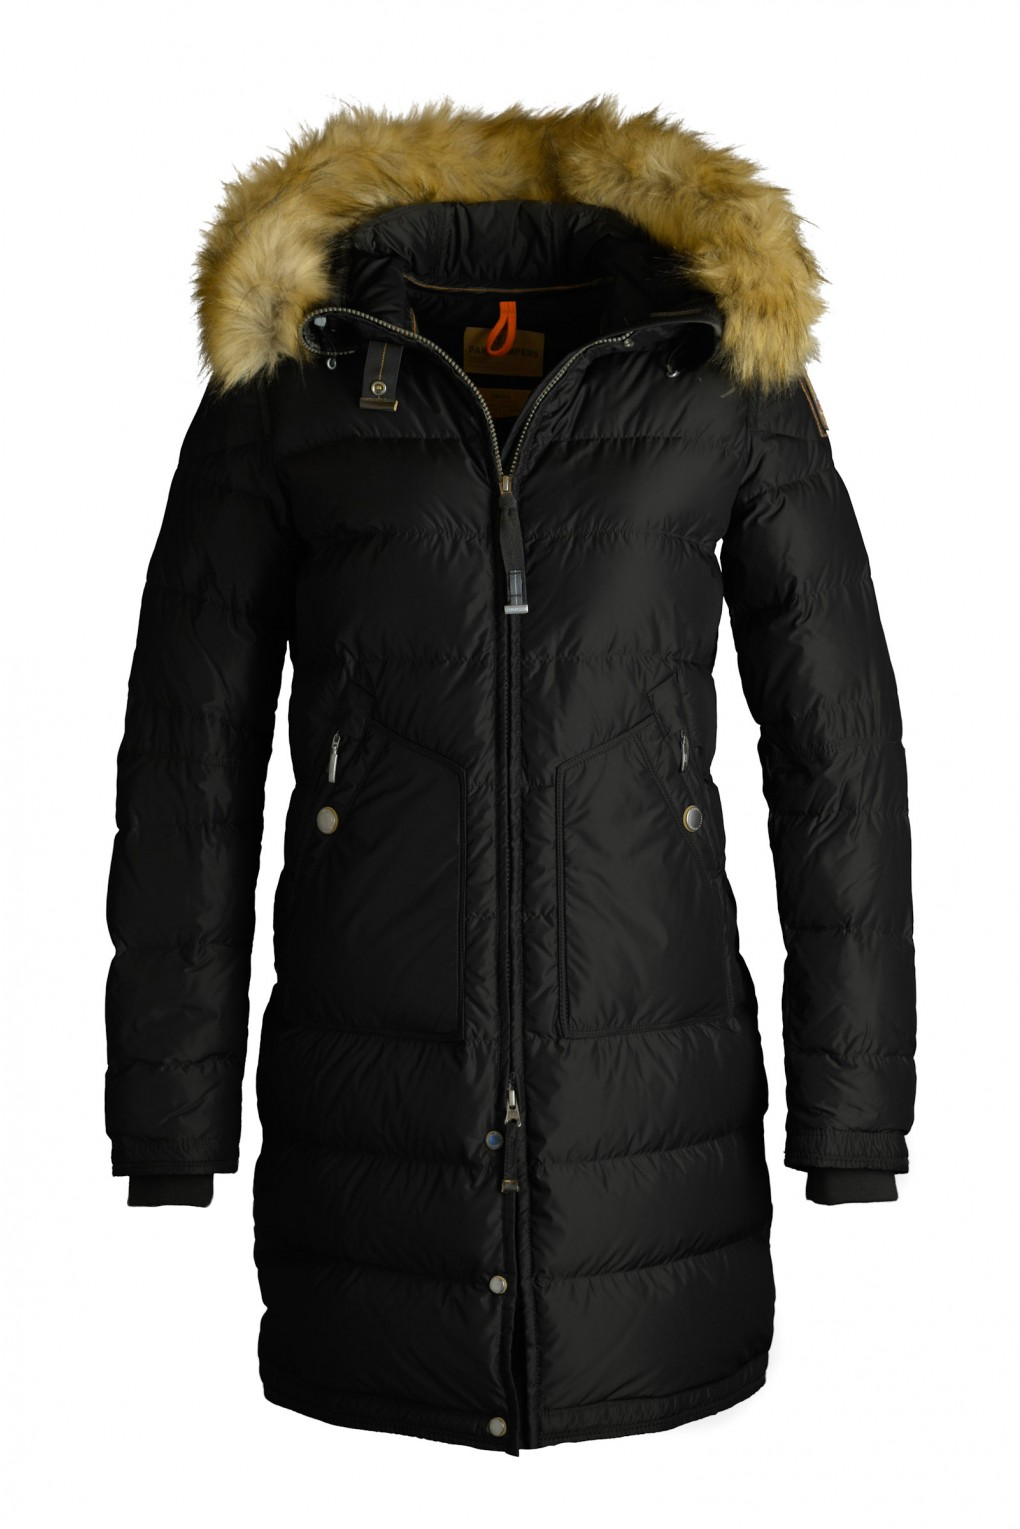 parajumpers LIGHT LONG BEAR ECO woman outerwear Black